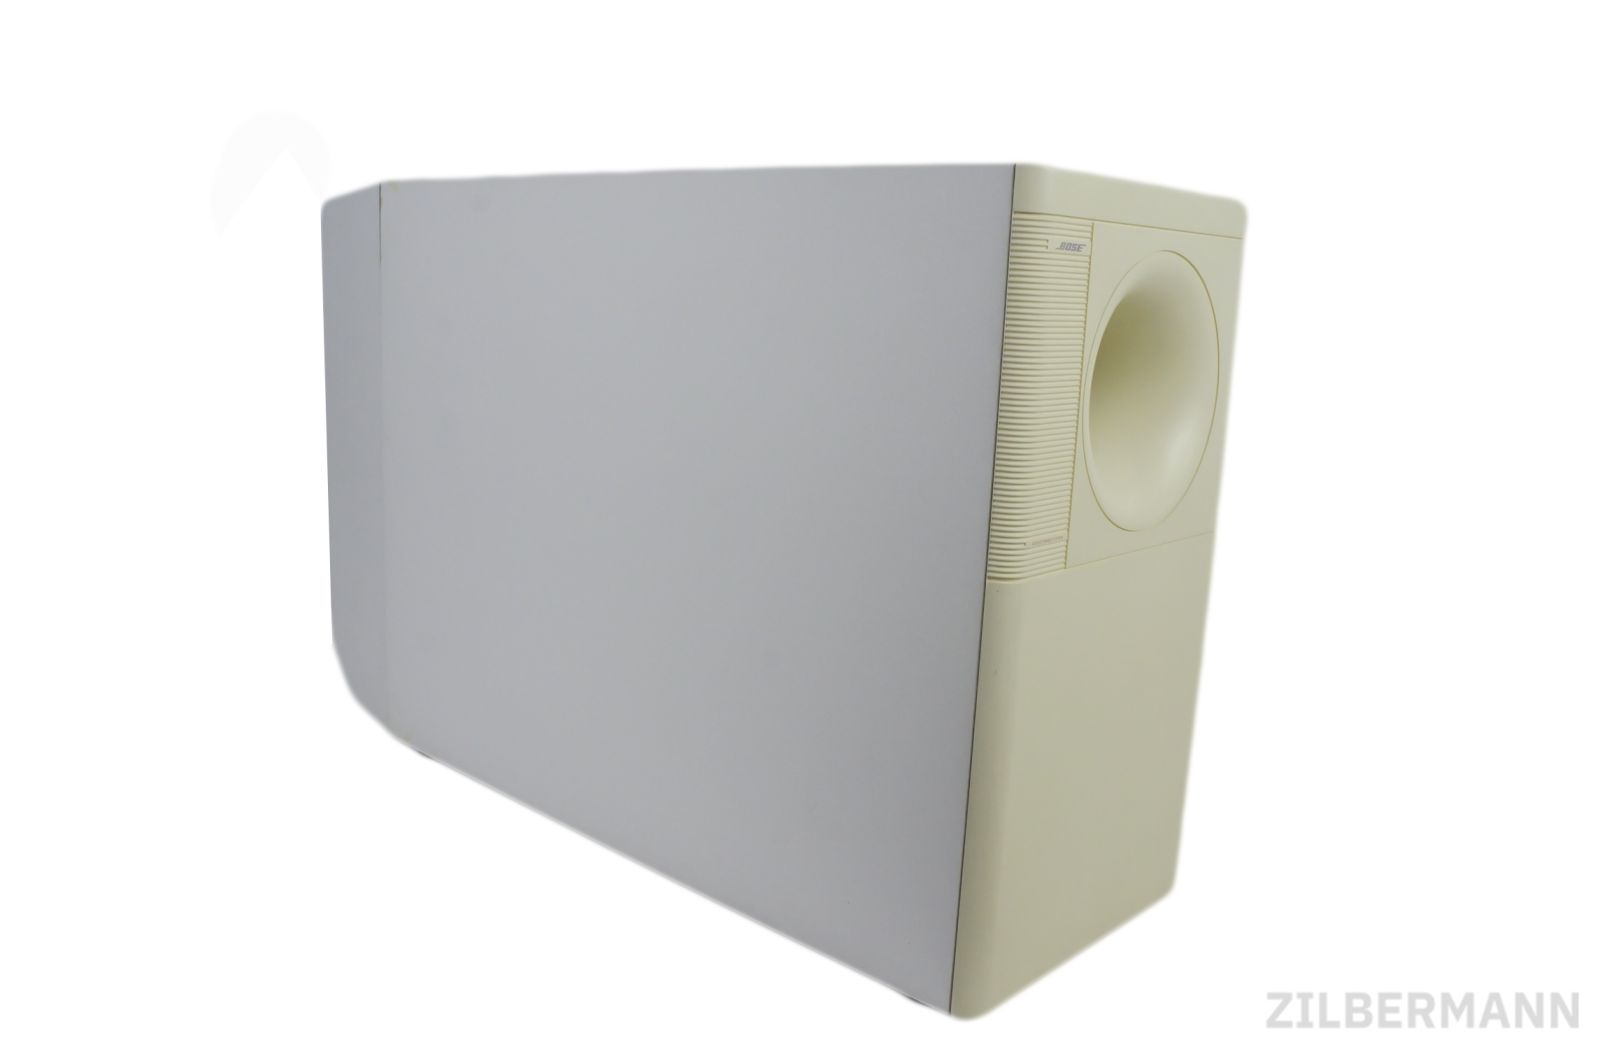 Bose_Acoustimass_5_series_IV_Powered_Subwoofer_Aktiv_Weiss_02